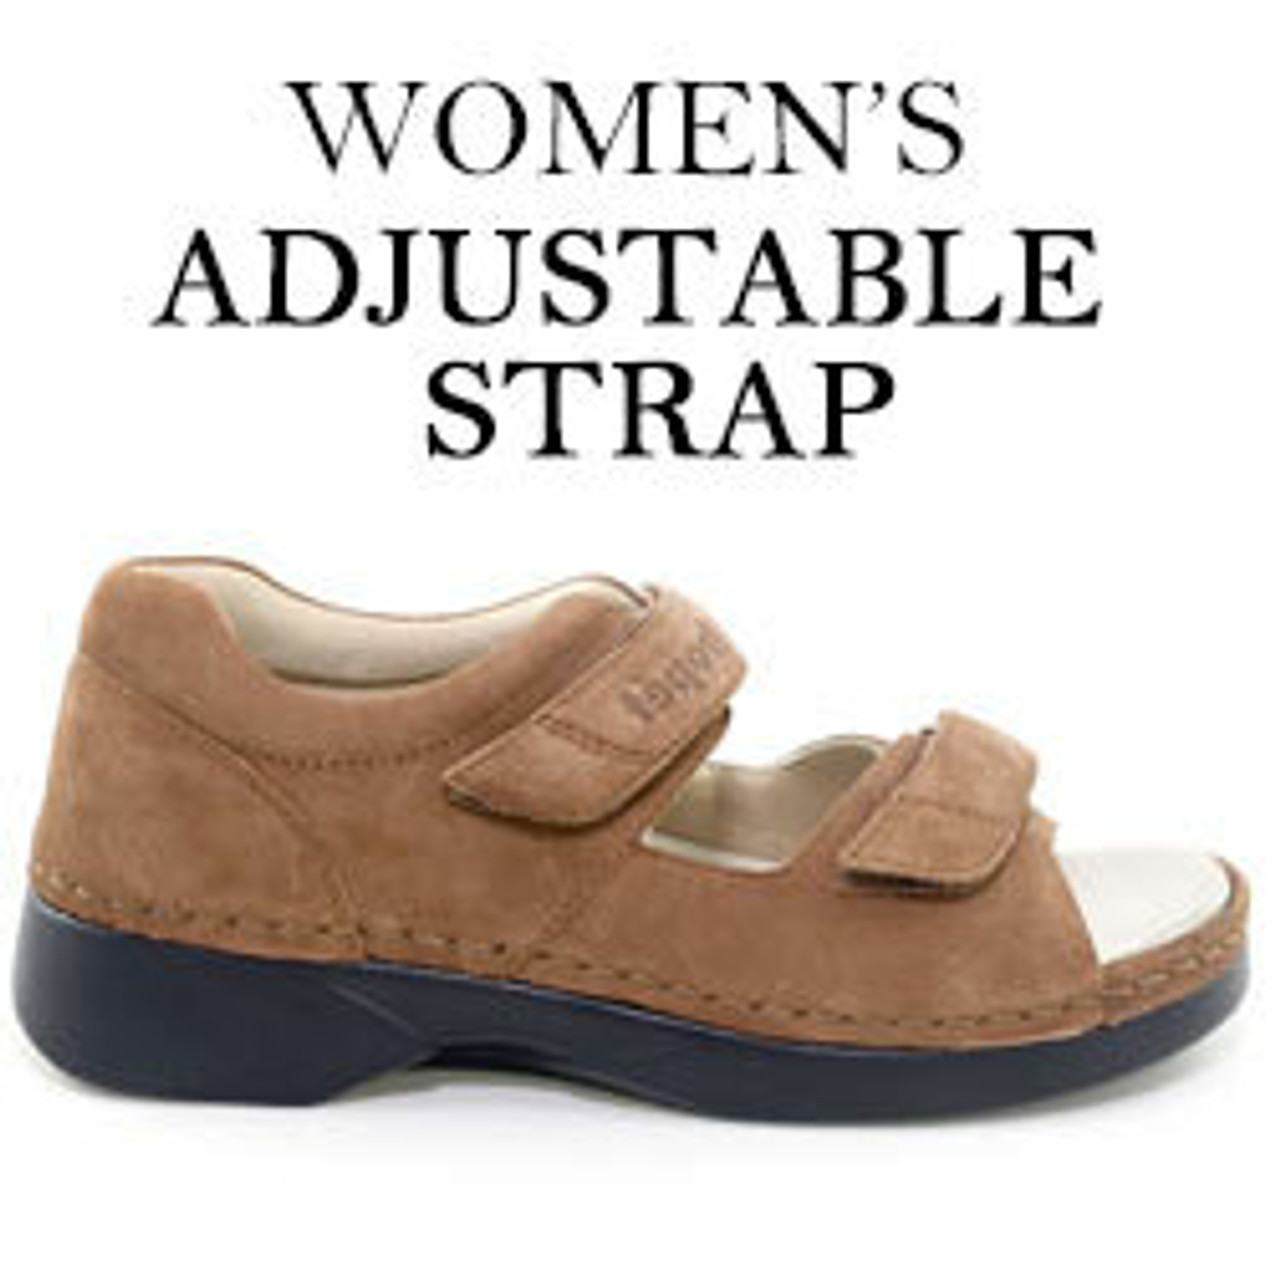 Adjustable Sandals, Slippers & Boots for Women